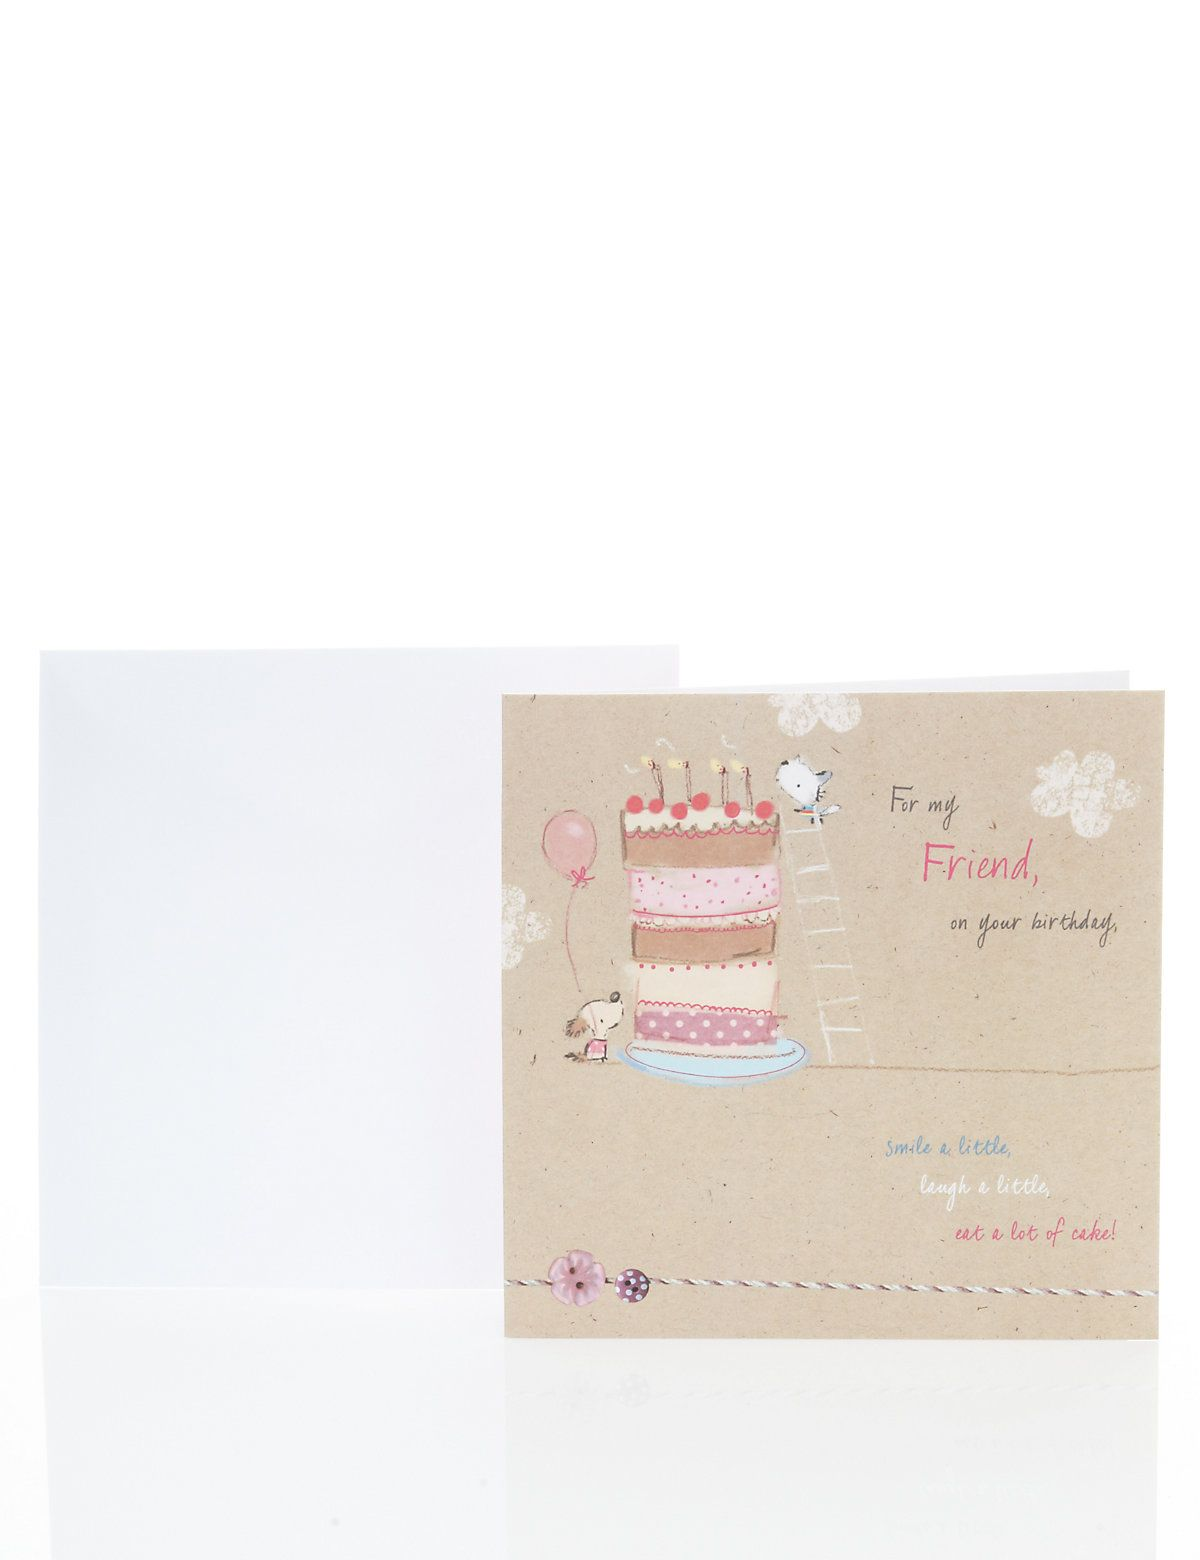 Cute Friend Birthday Card M S Fem Design Pinterest Friend